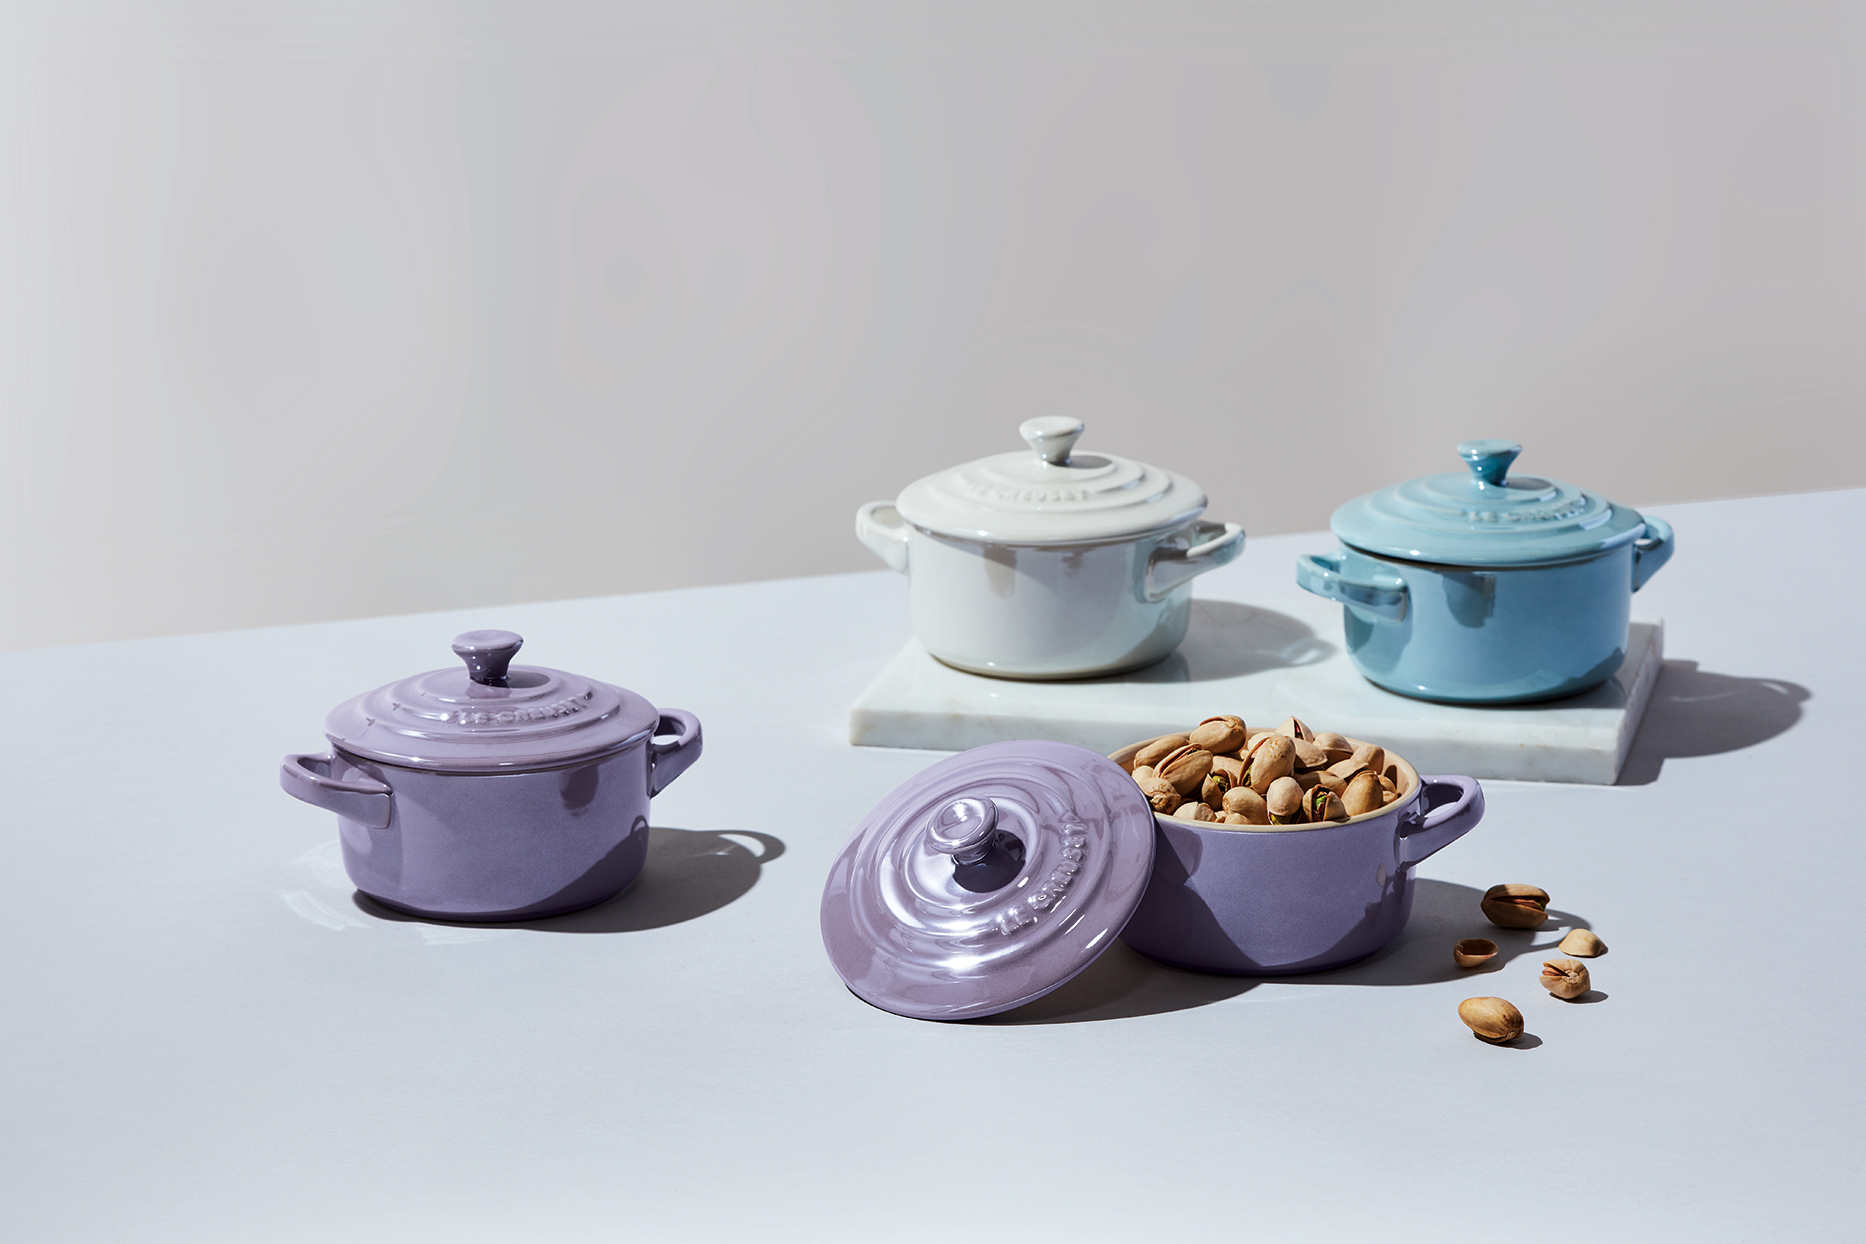 Le Creuset metallic mini cocottes in purple, blue, and white with nuts in purple cocotte